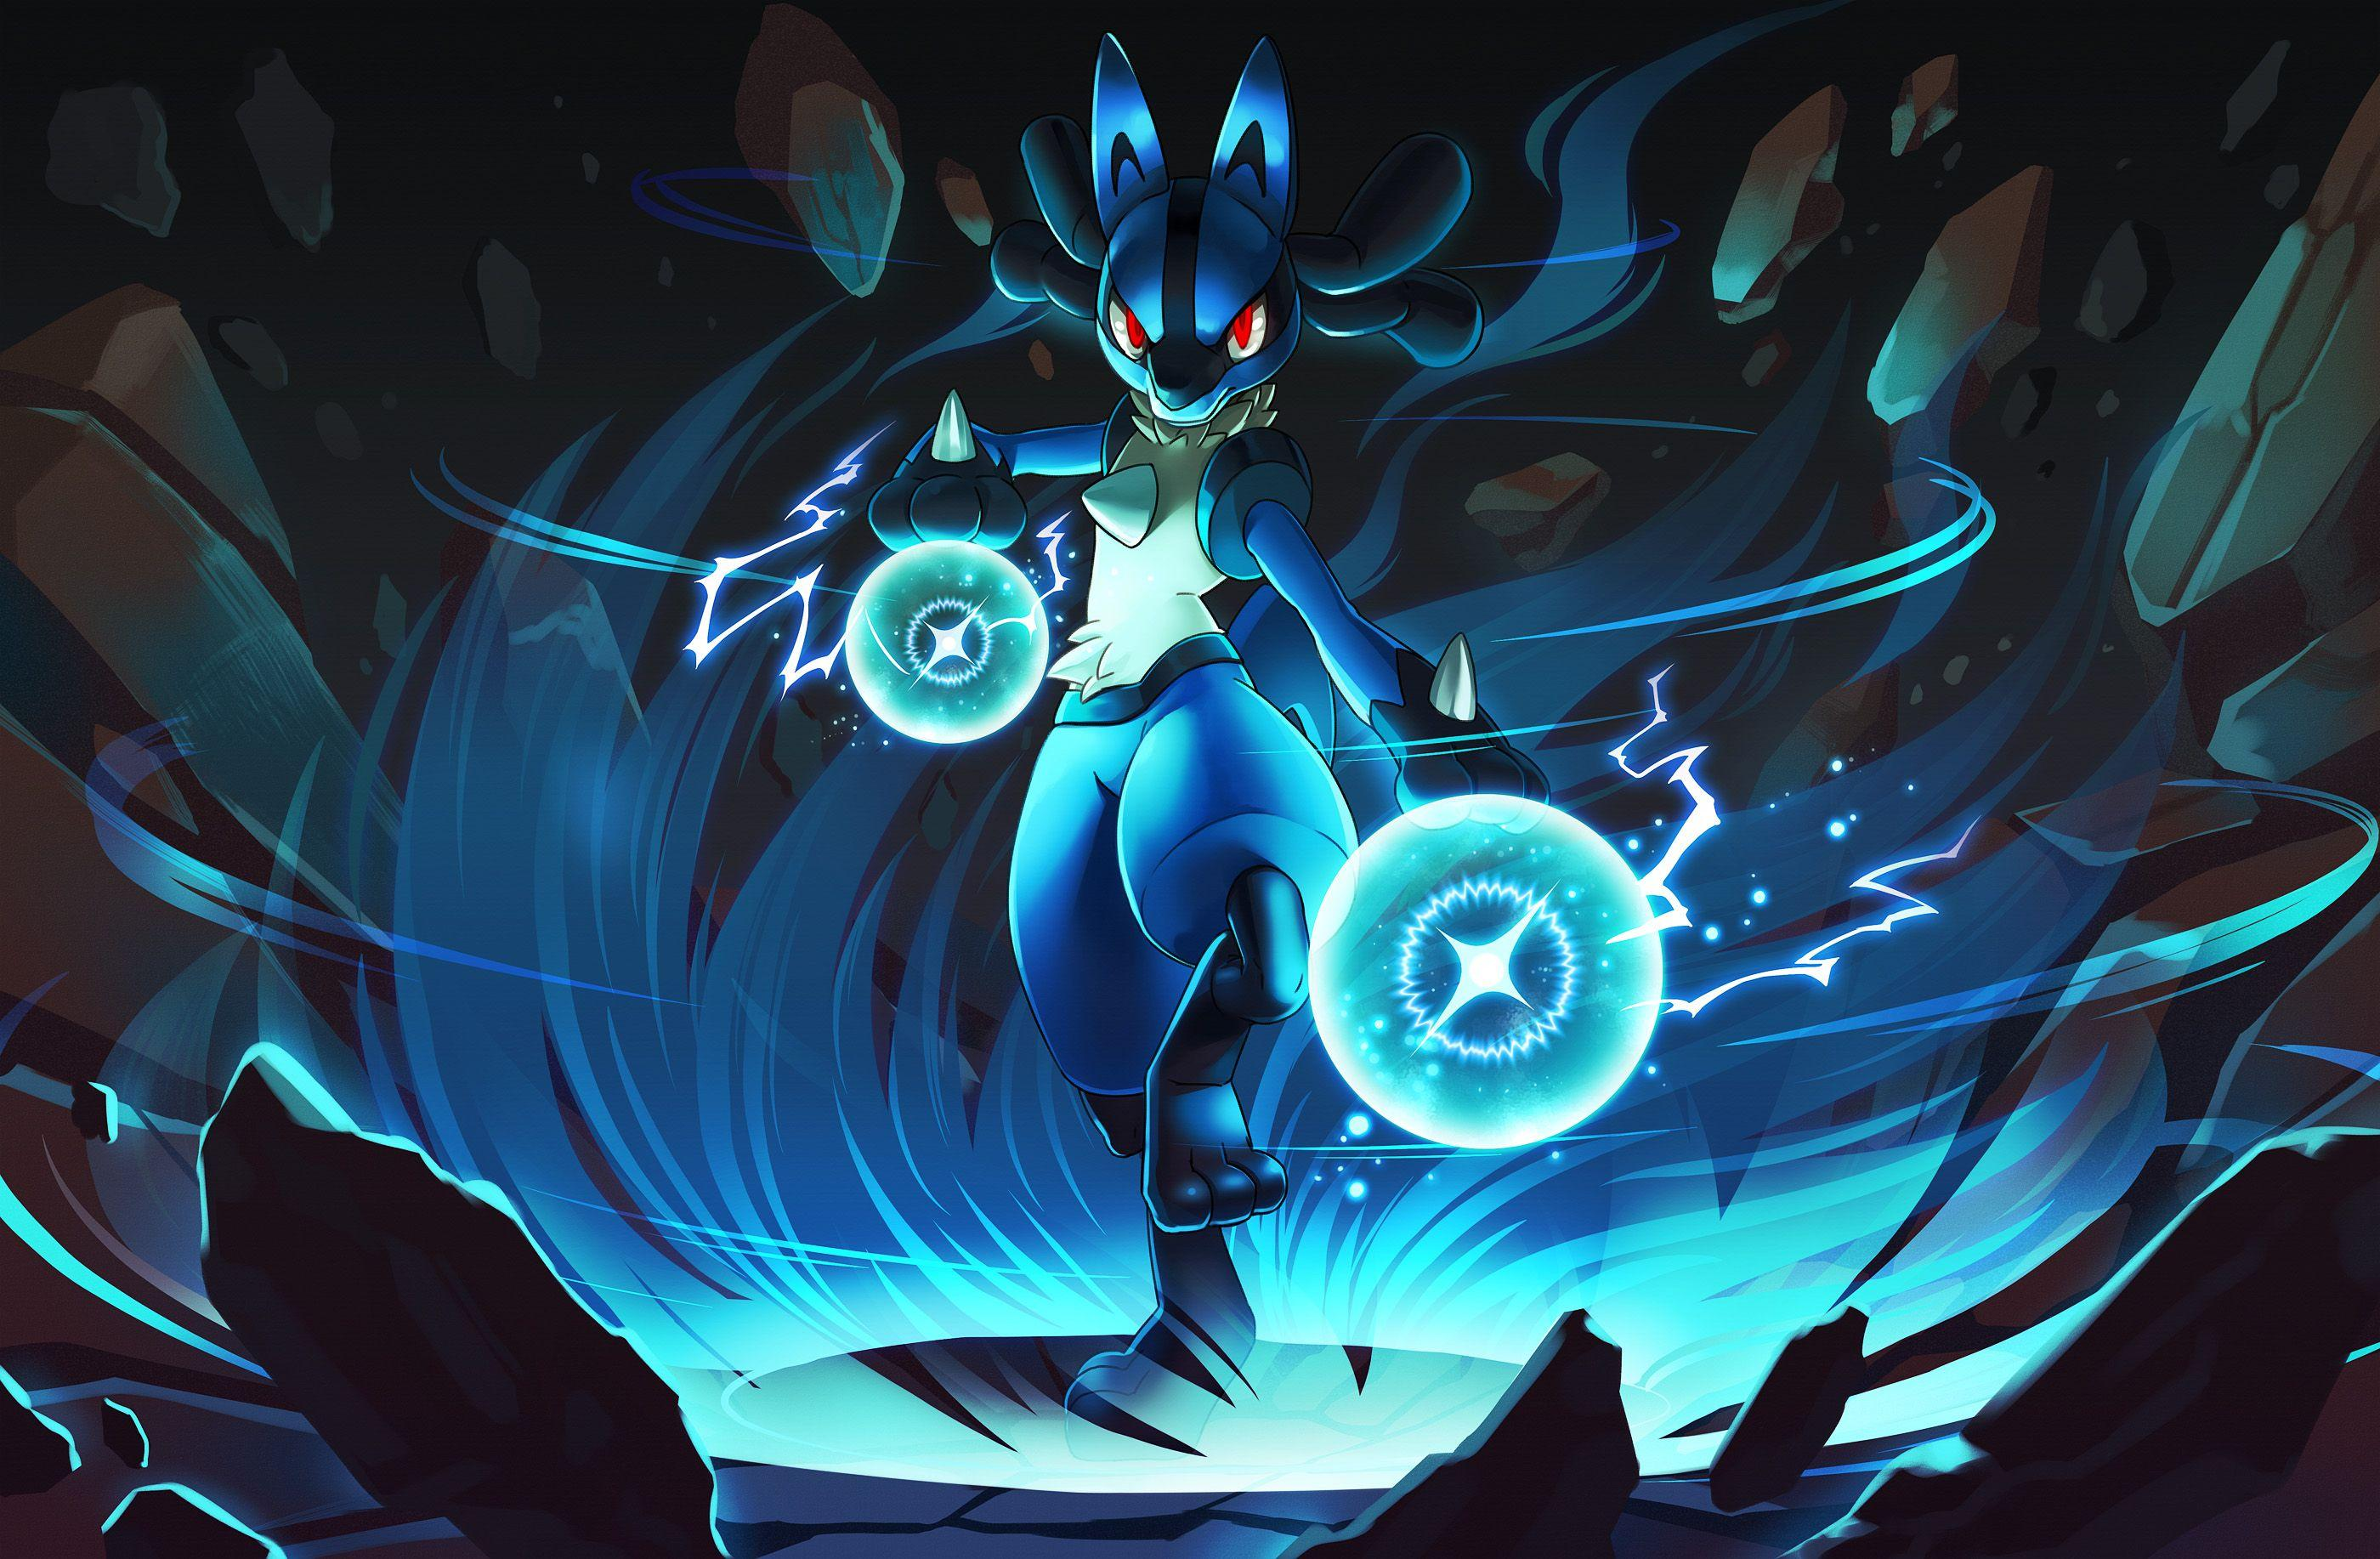 15 Lucario (Pokémon) HD Wallpapers | Background Images - Wallpaper Abyss